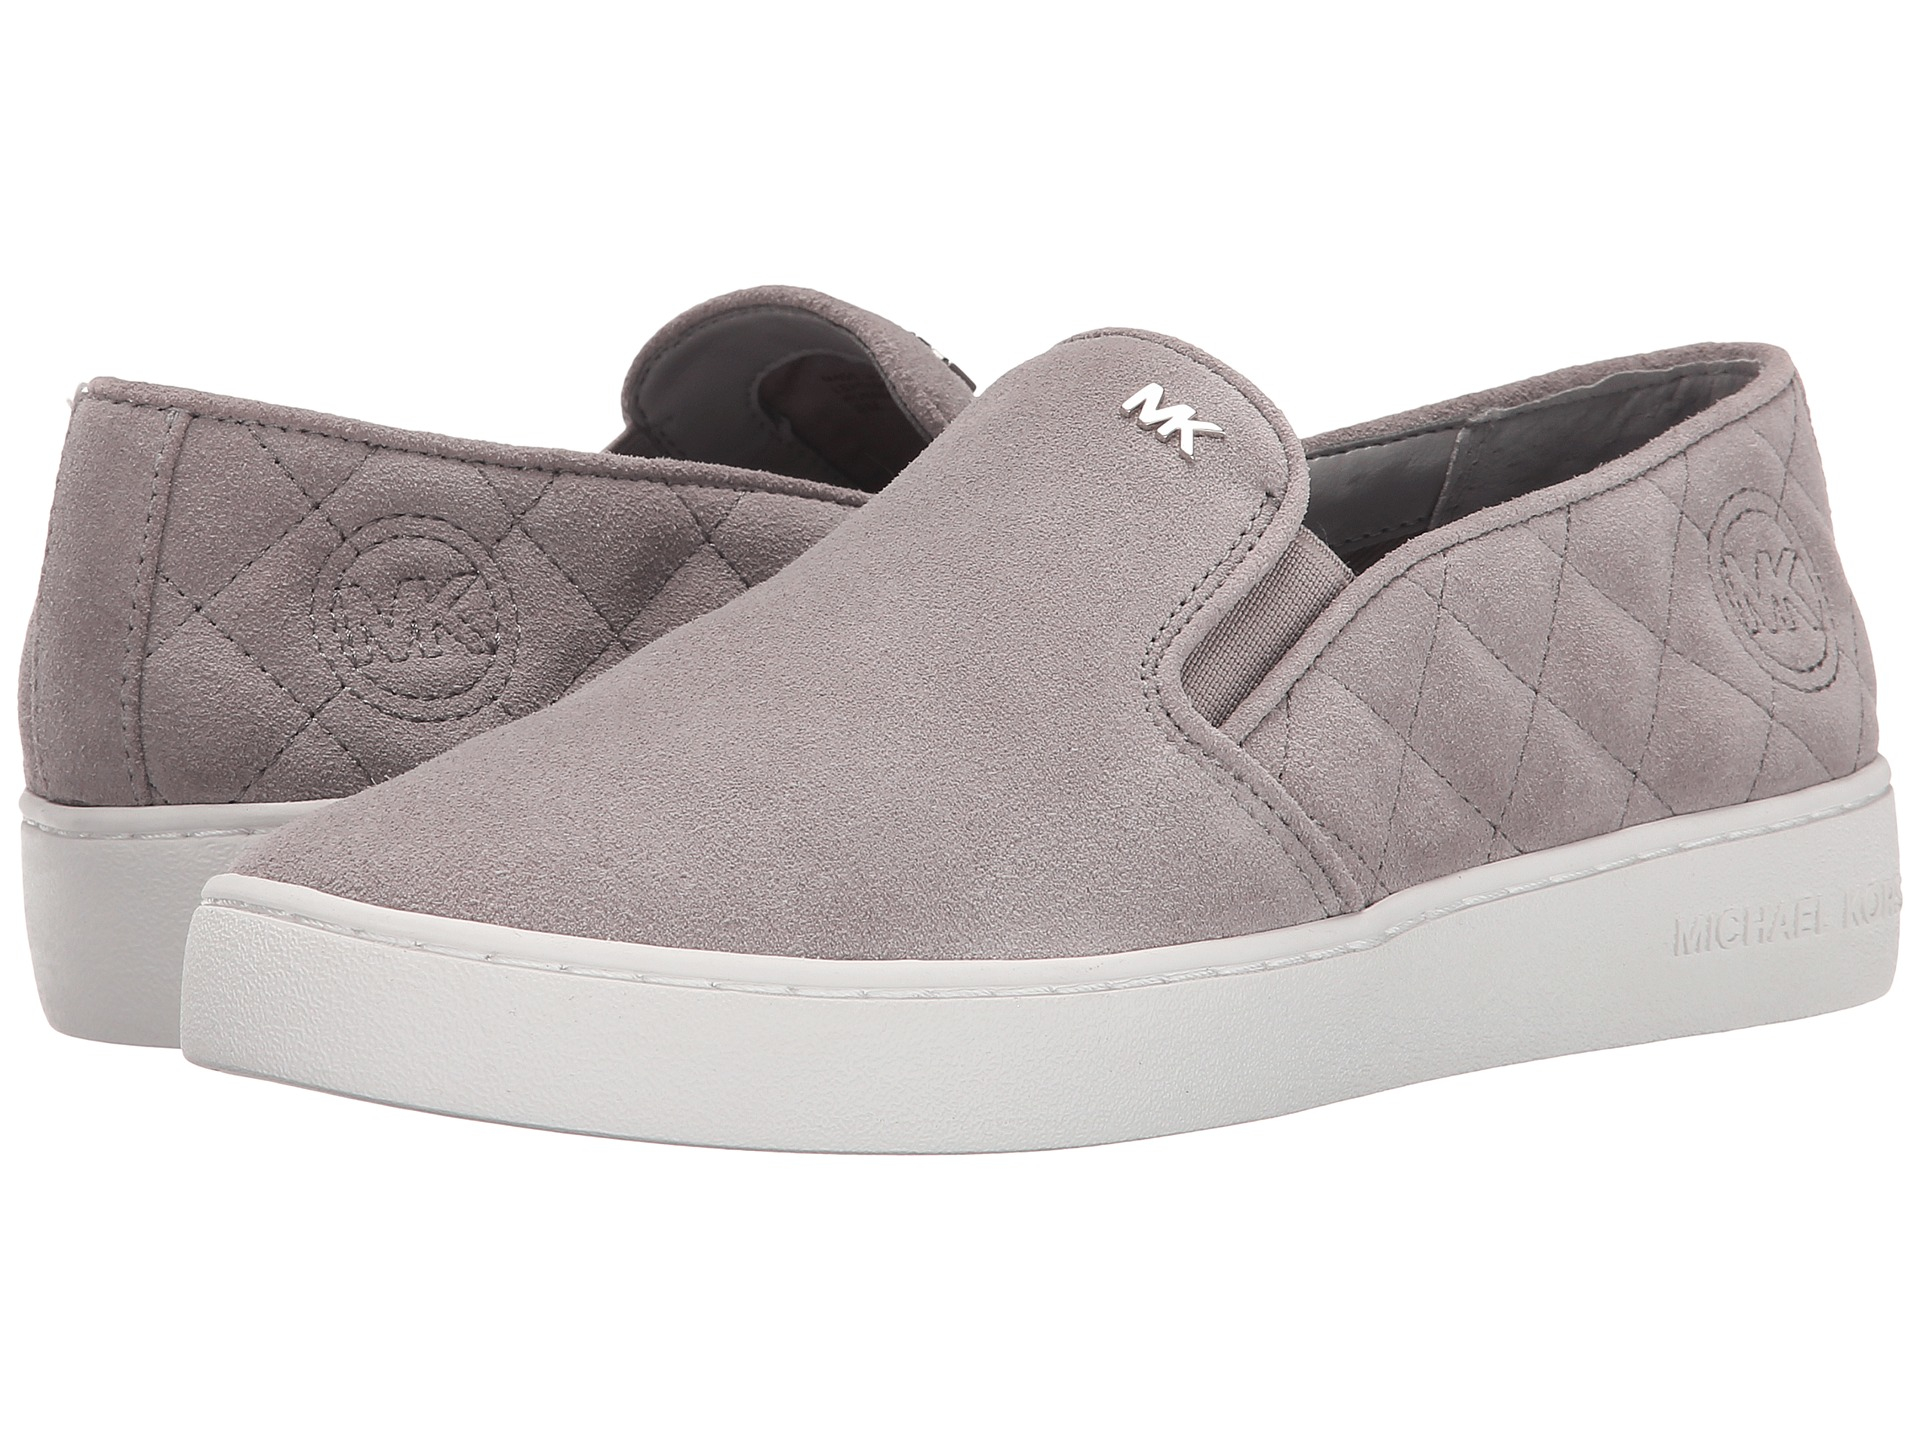 Lyst - Michael michael kors Keaton Quilted Slip-on in Gray : michael kors quilted sneakers - Adamdwight.com